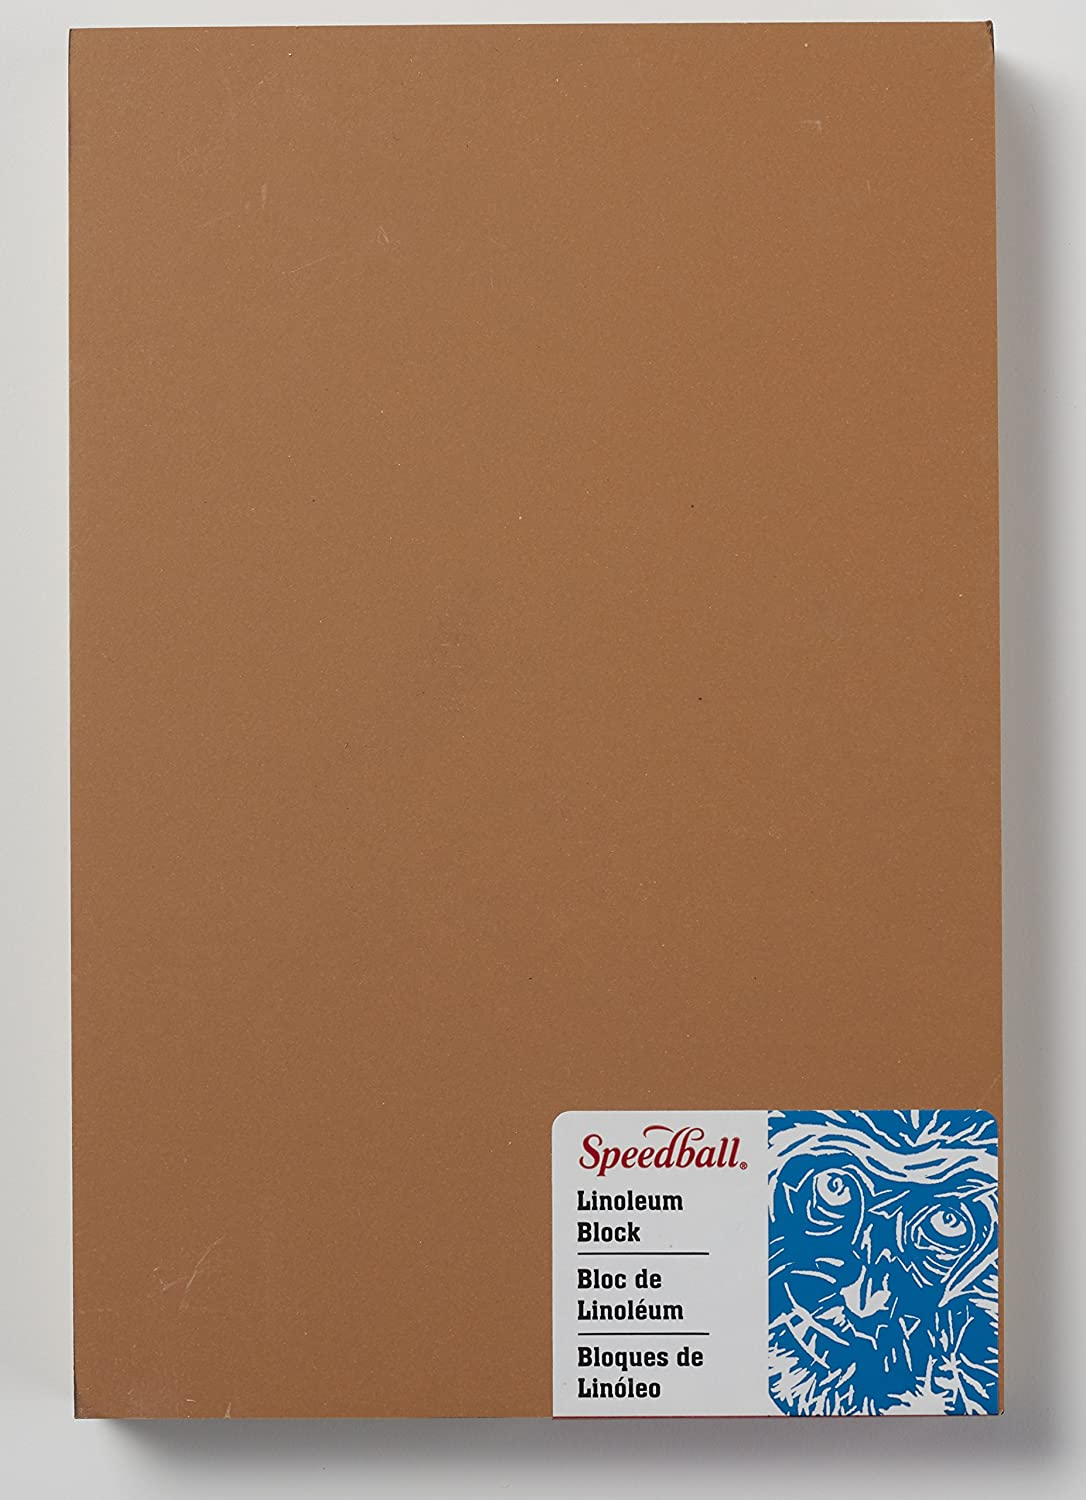 Smoky Tan 5 x 7 Inches Speedball 4309 Premium Mounted Linoleum Block Fine Flat Surface for Easy Carving